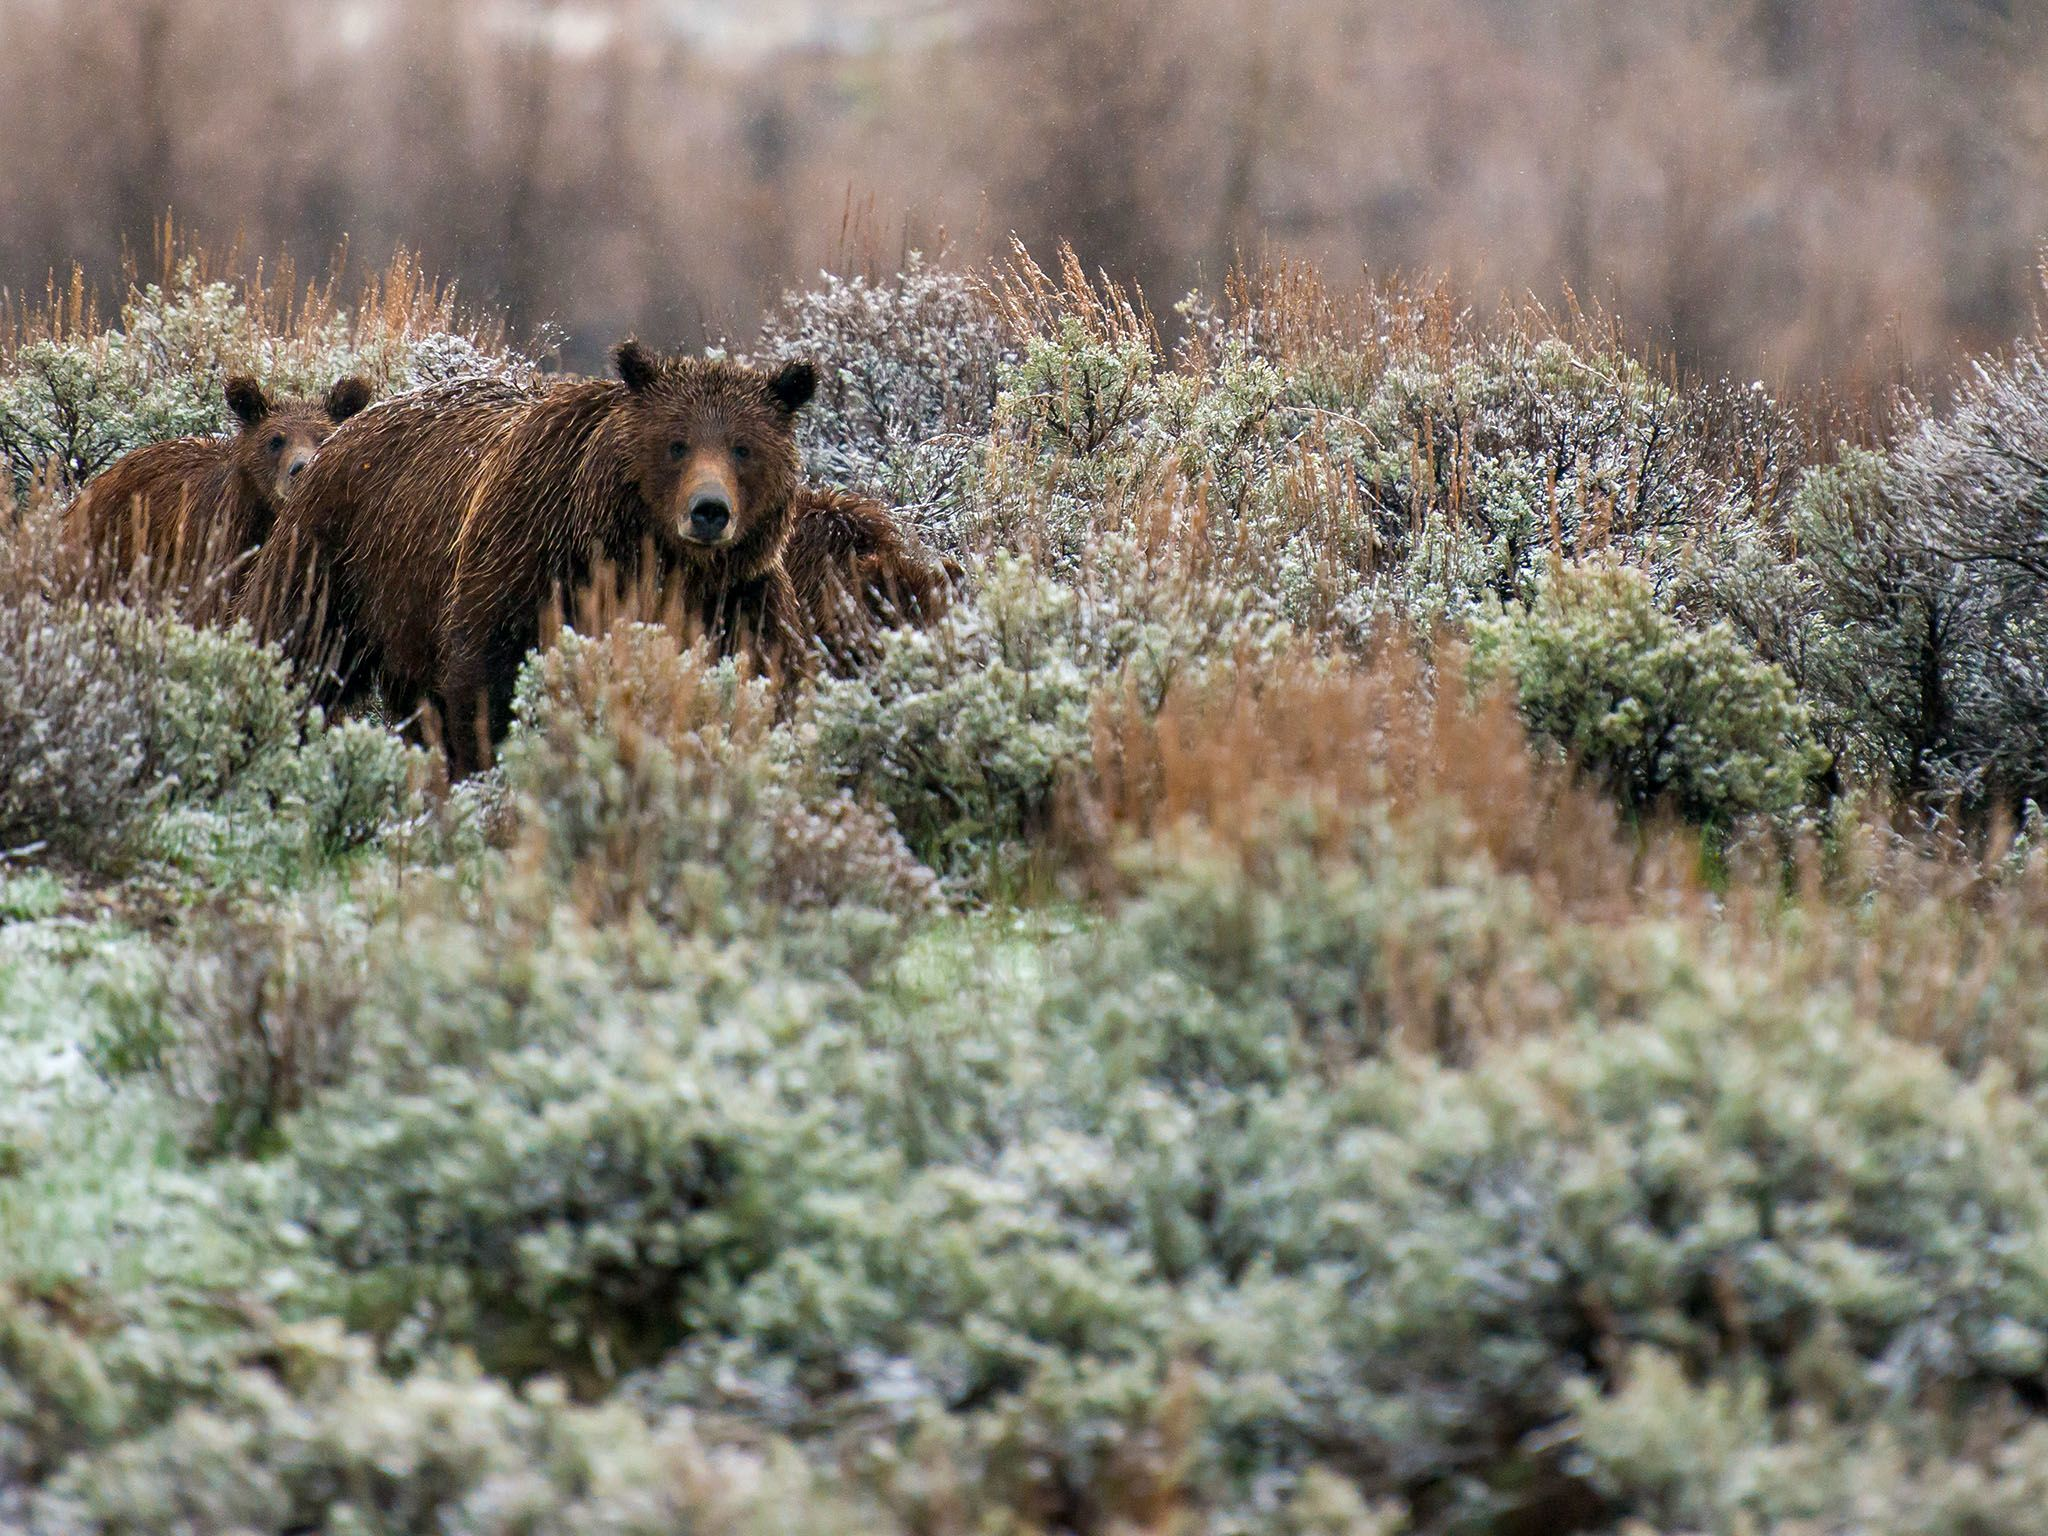 Grand Teton National Park, Wyo.: Bear 399 in sage brush with her two yearling cubs. This image is... [Dagens foto - november 2015]